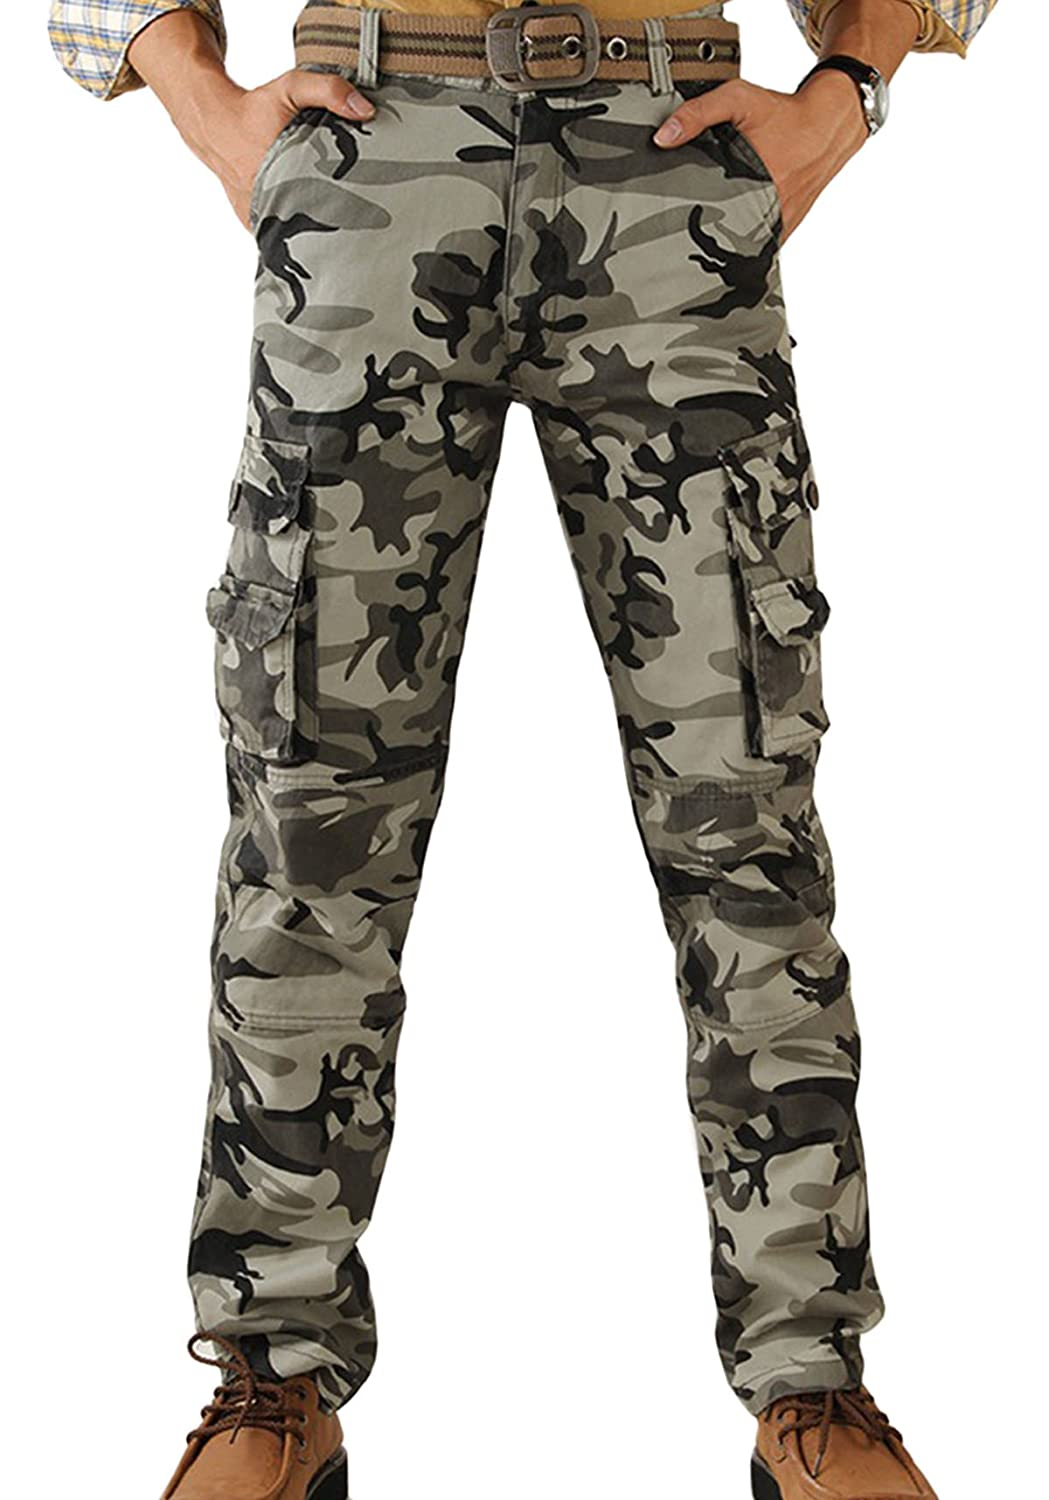 2578e3f9d6f18 Panegy Men's Camouflage Army Work Pants Combat Wild Tactical Outdoors  Trousers: Amazon.ca: Clothing & Accessories